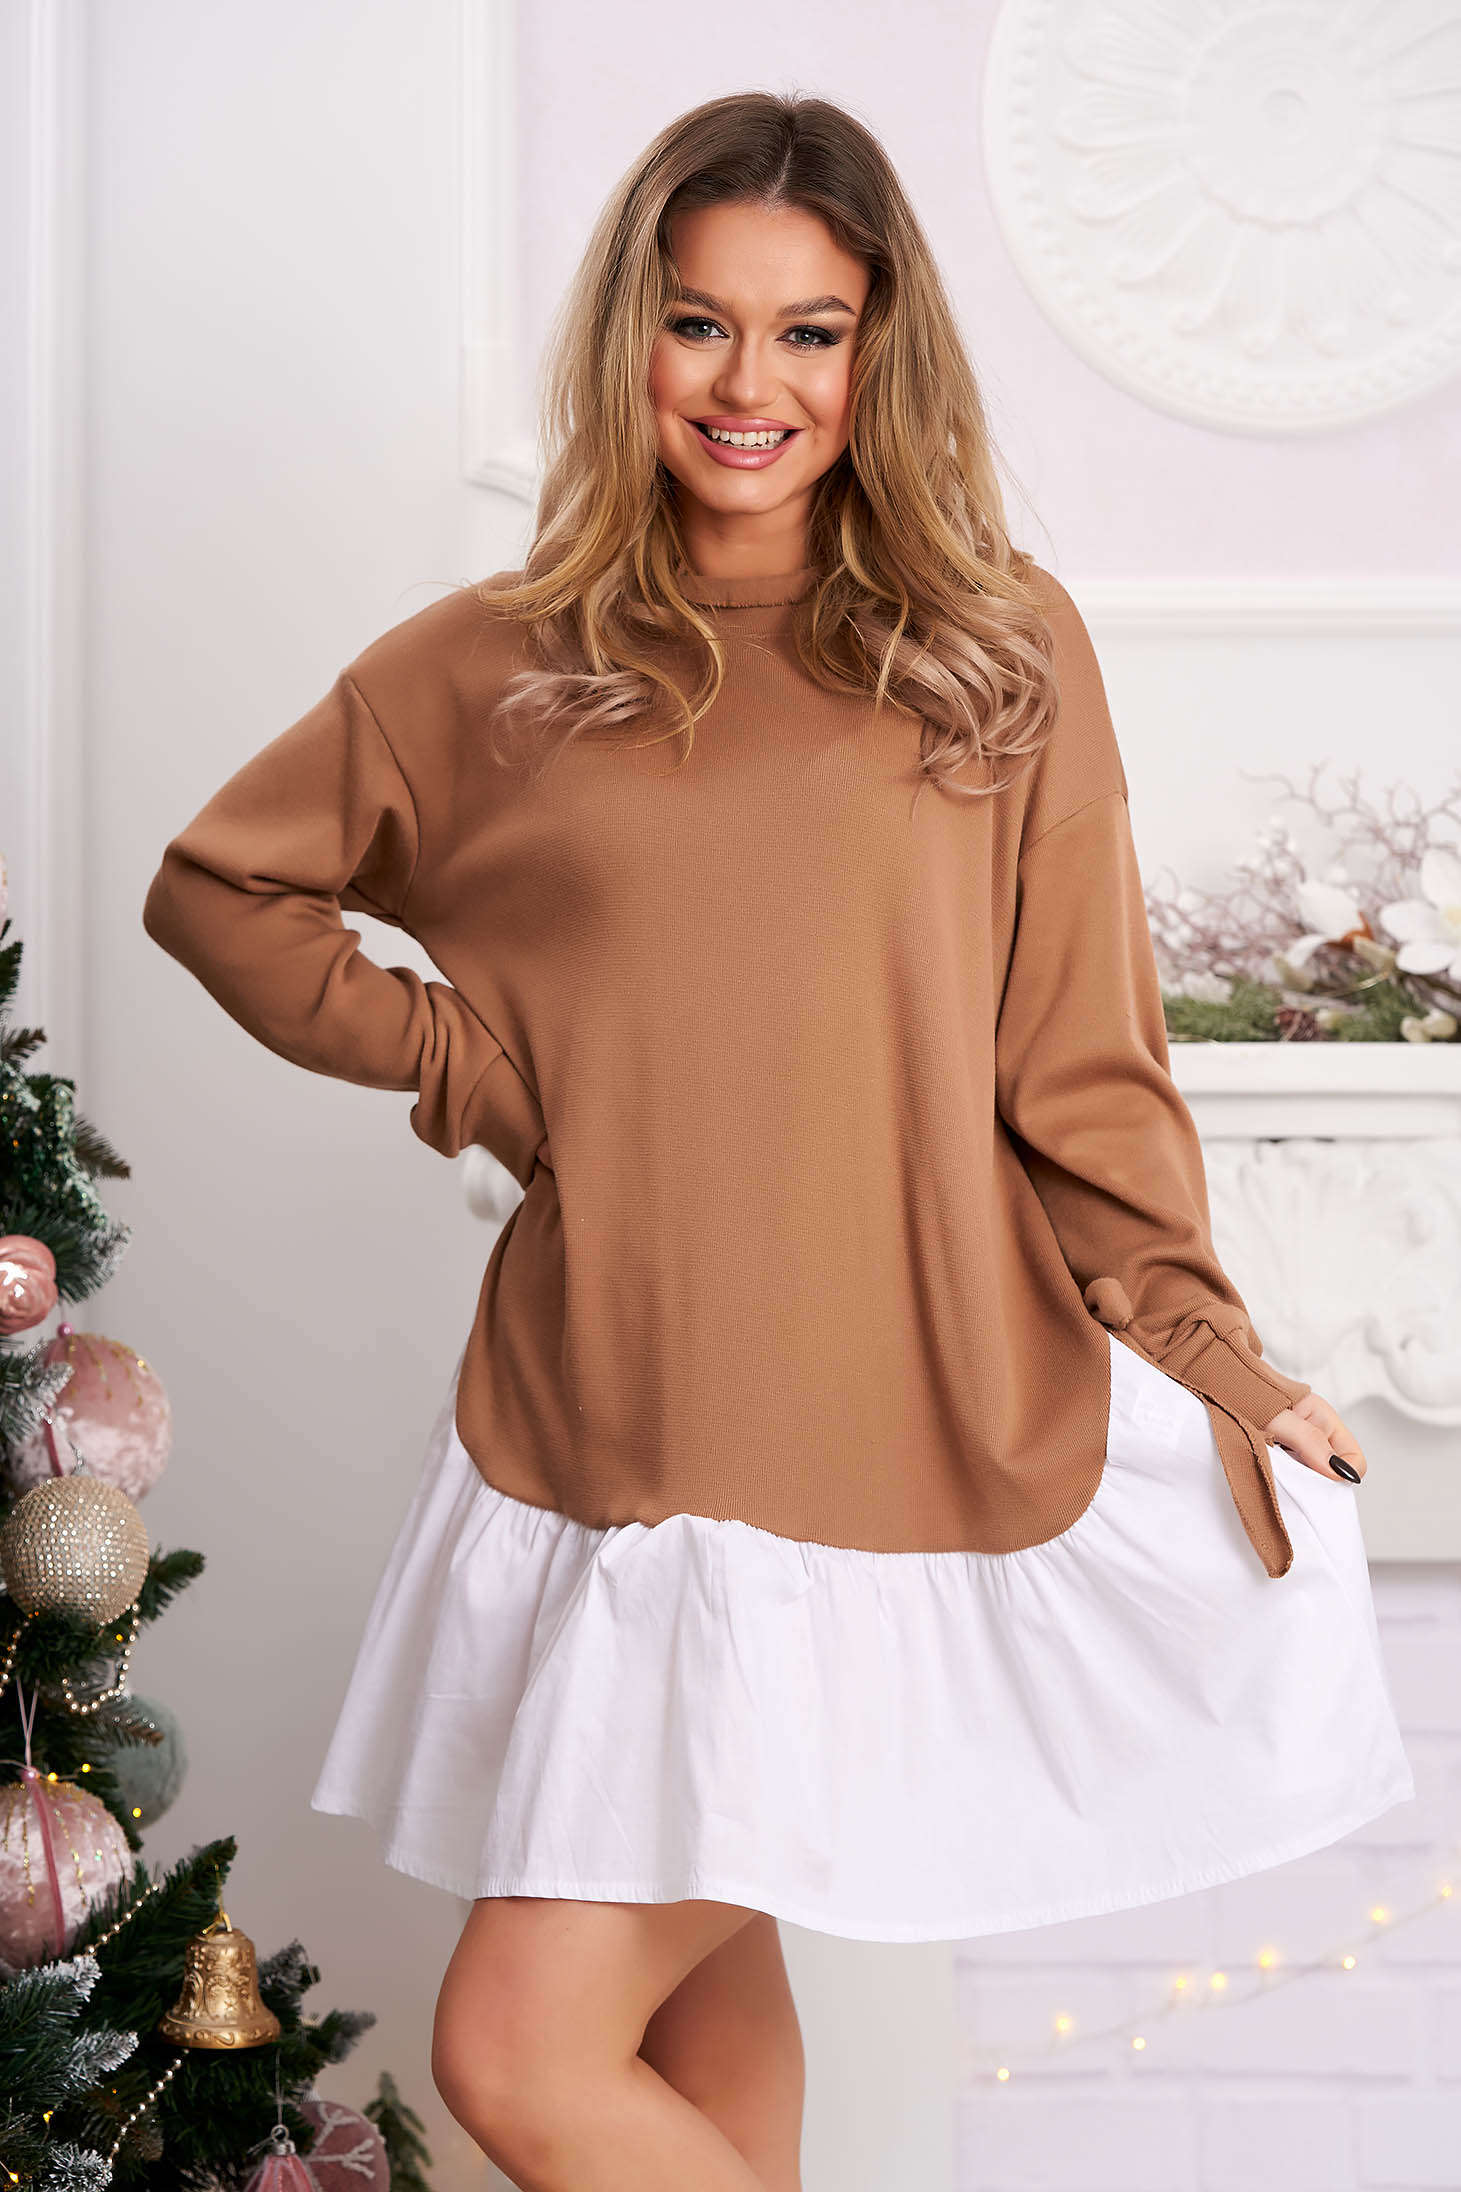 Cappuccino dress casual flared with bow accessories short cut